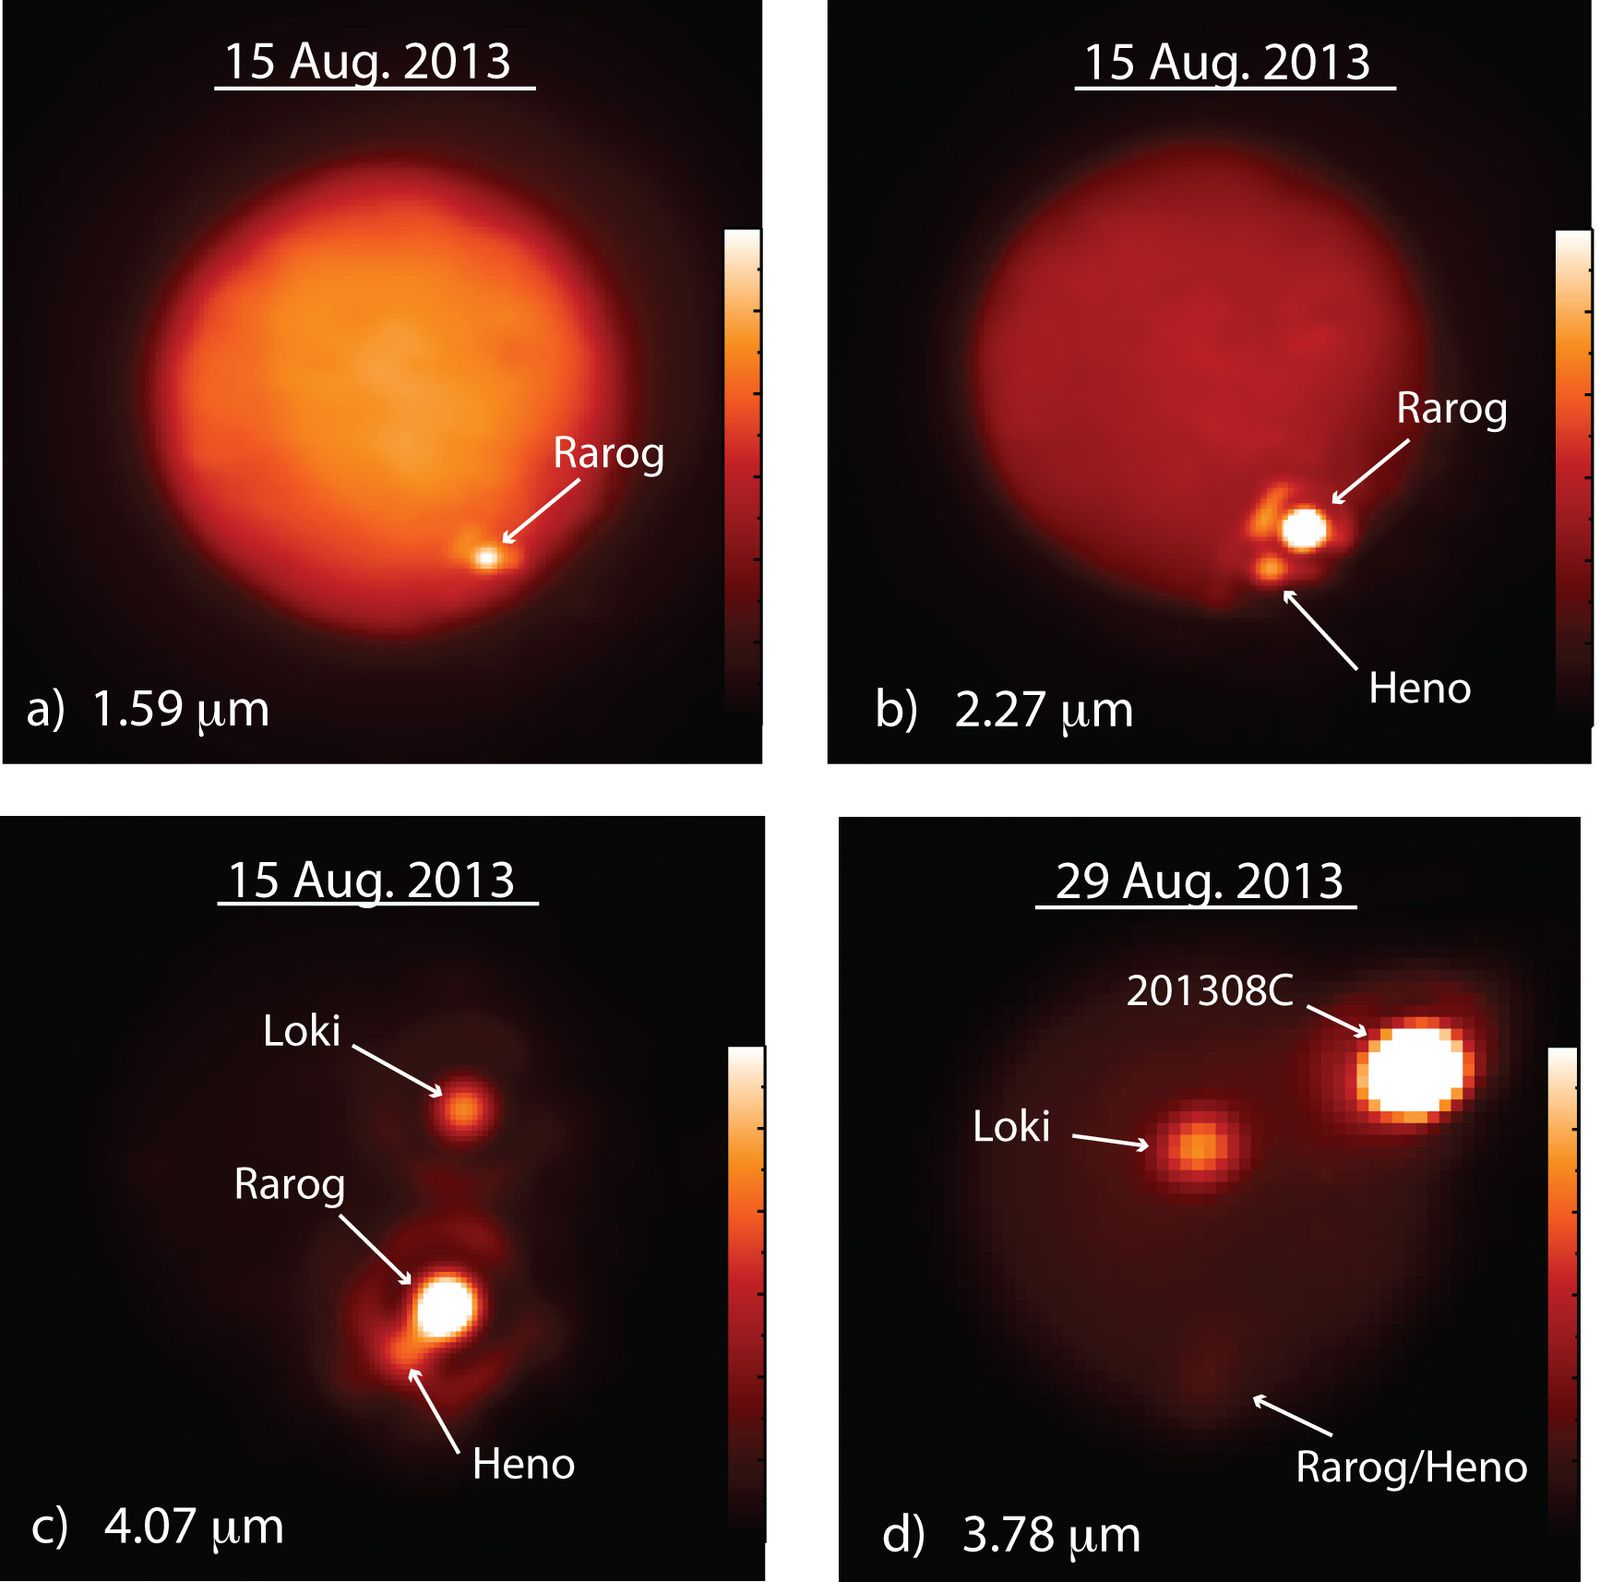 Images des éruptions entre le 15 et le 29 août sur Io / Images of Io obtained at different infrared wavelengths (in microns, μm, or millionths of a meter) with the W. M. Keck Observatory's 10-meter Keck II telescope on Aug. 15, 2013 (a-c) and the Gemini North telescope on Aug. 29, 2013 (d). The bar on the right of each image indicates the intensity of the infrared emission. Note that emissions from the large volcanic outbursts on Aug. 15 at Rarog and Heno Paterae have substantially faded by Aug. 29. A second bright spot is visible to the north of the Rarog and Heno eruptions in c and to the west of the outburst in d. This hot spot was identified as Loki Patera, a lava lake that appeared to be particularly active at the same time. Image by Imke de Pater and Katherine de Kleer, UC Berkeley.